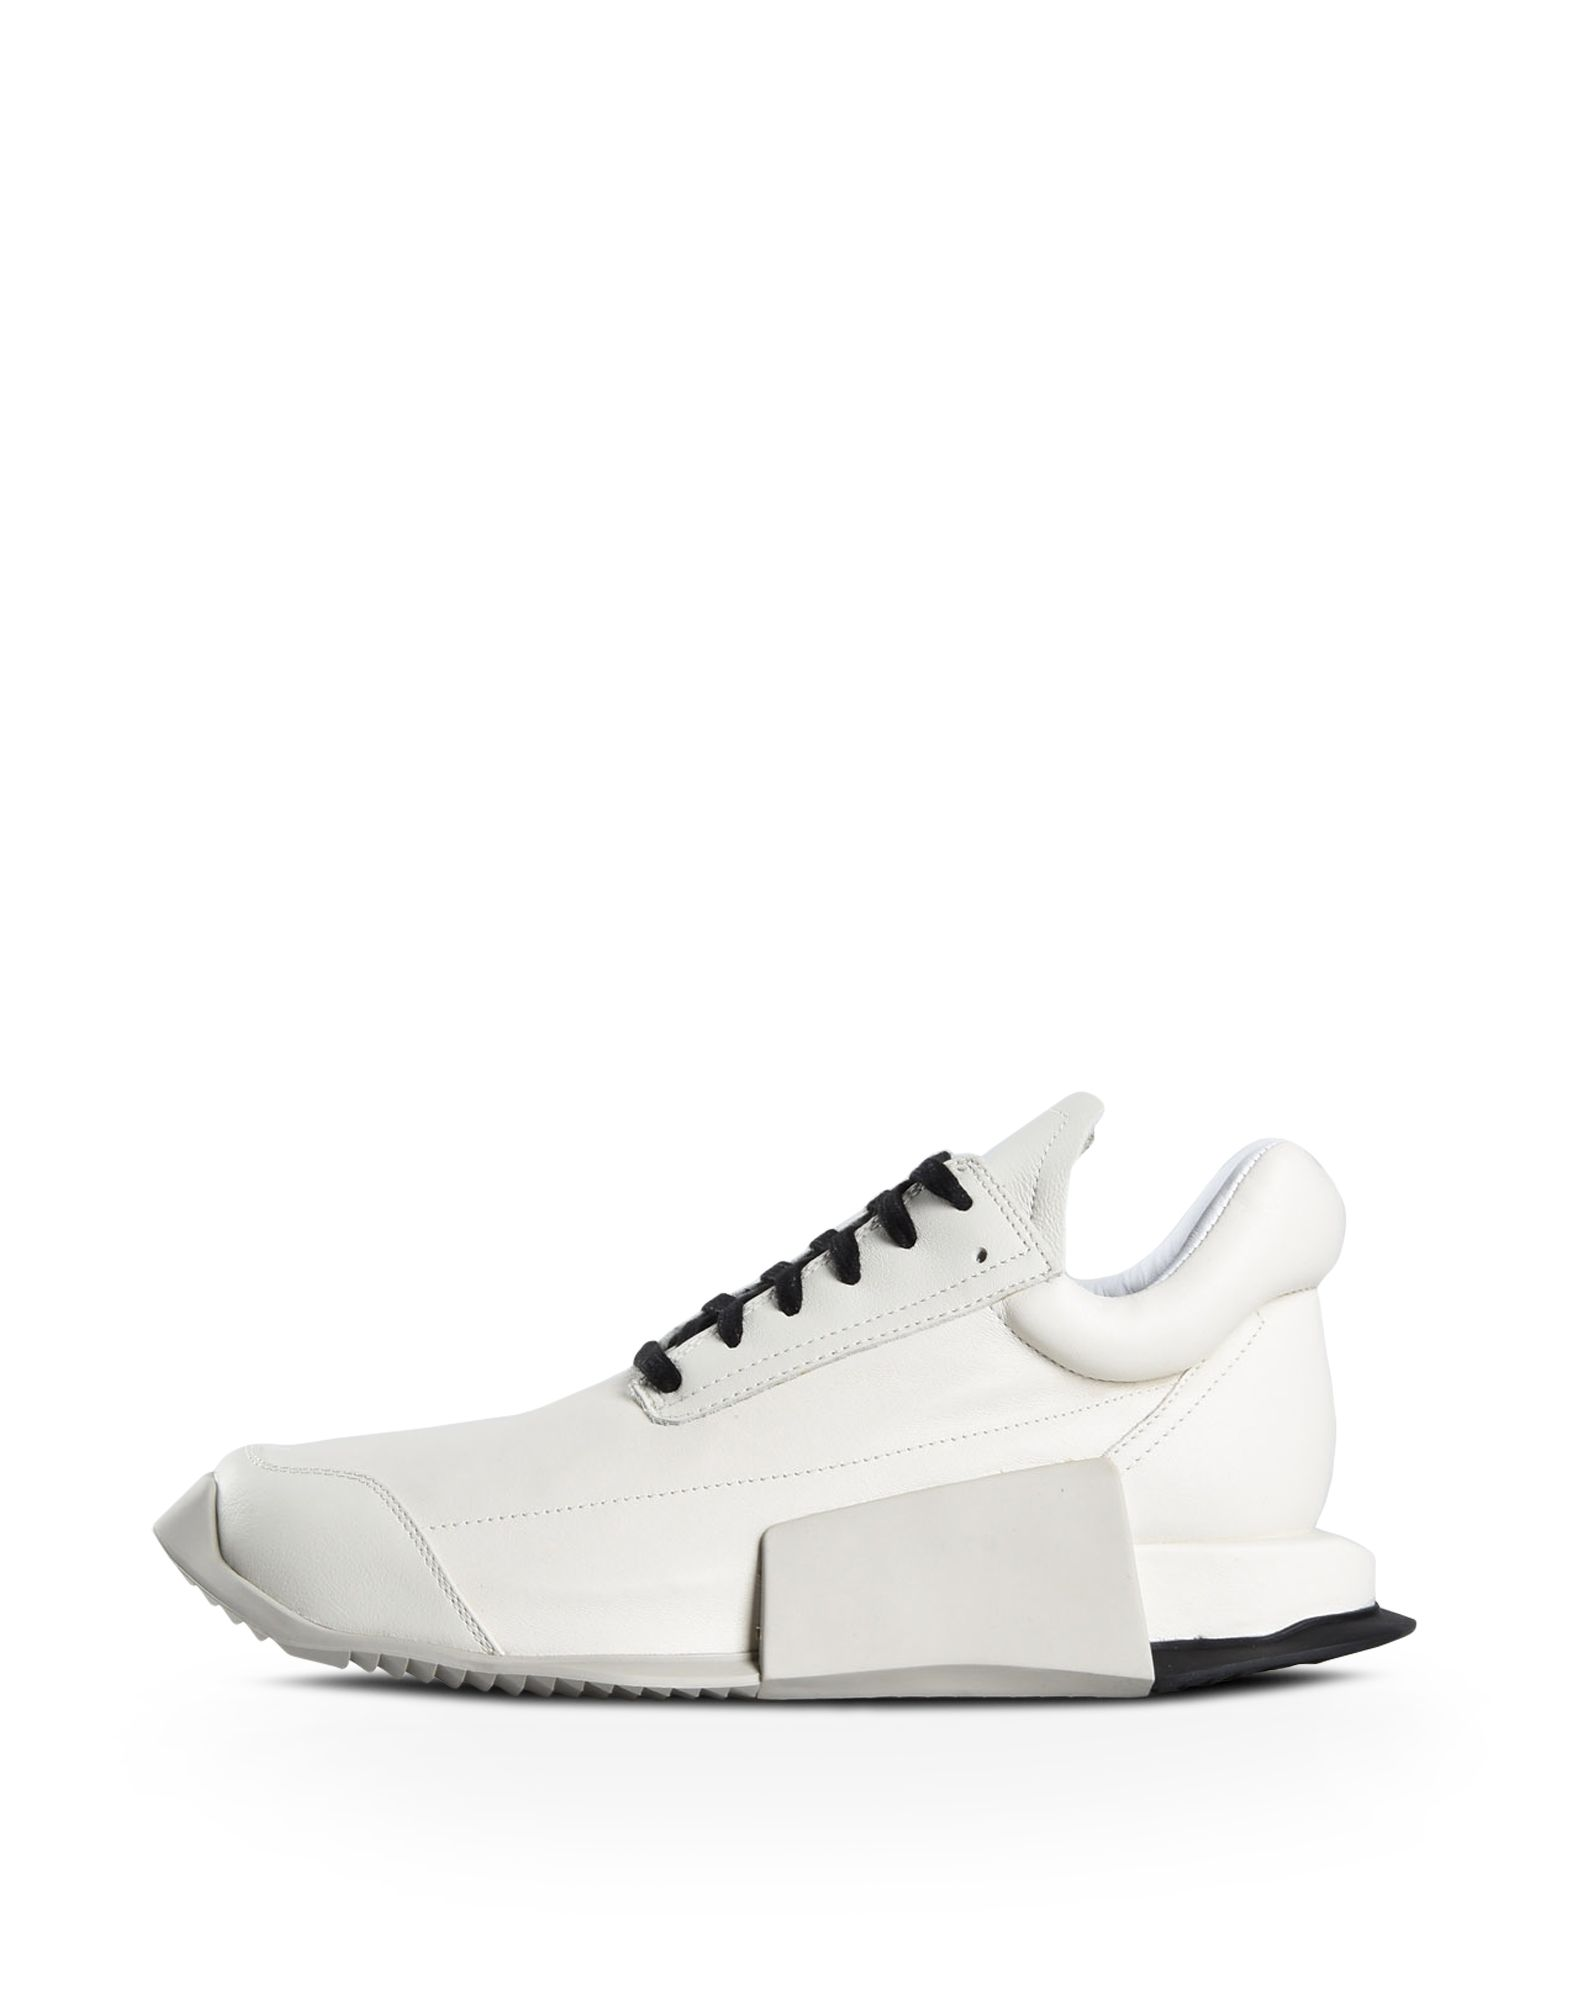 RO LEVEL RUNNER LOW SHOES unisex Y 3 adidas